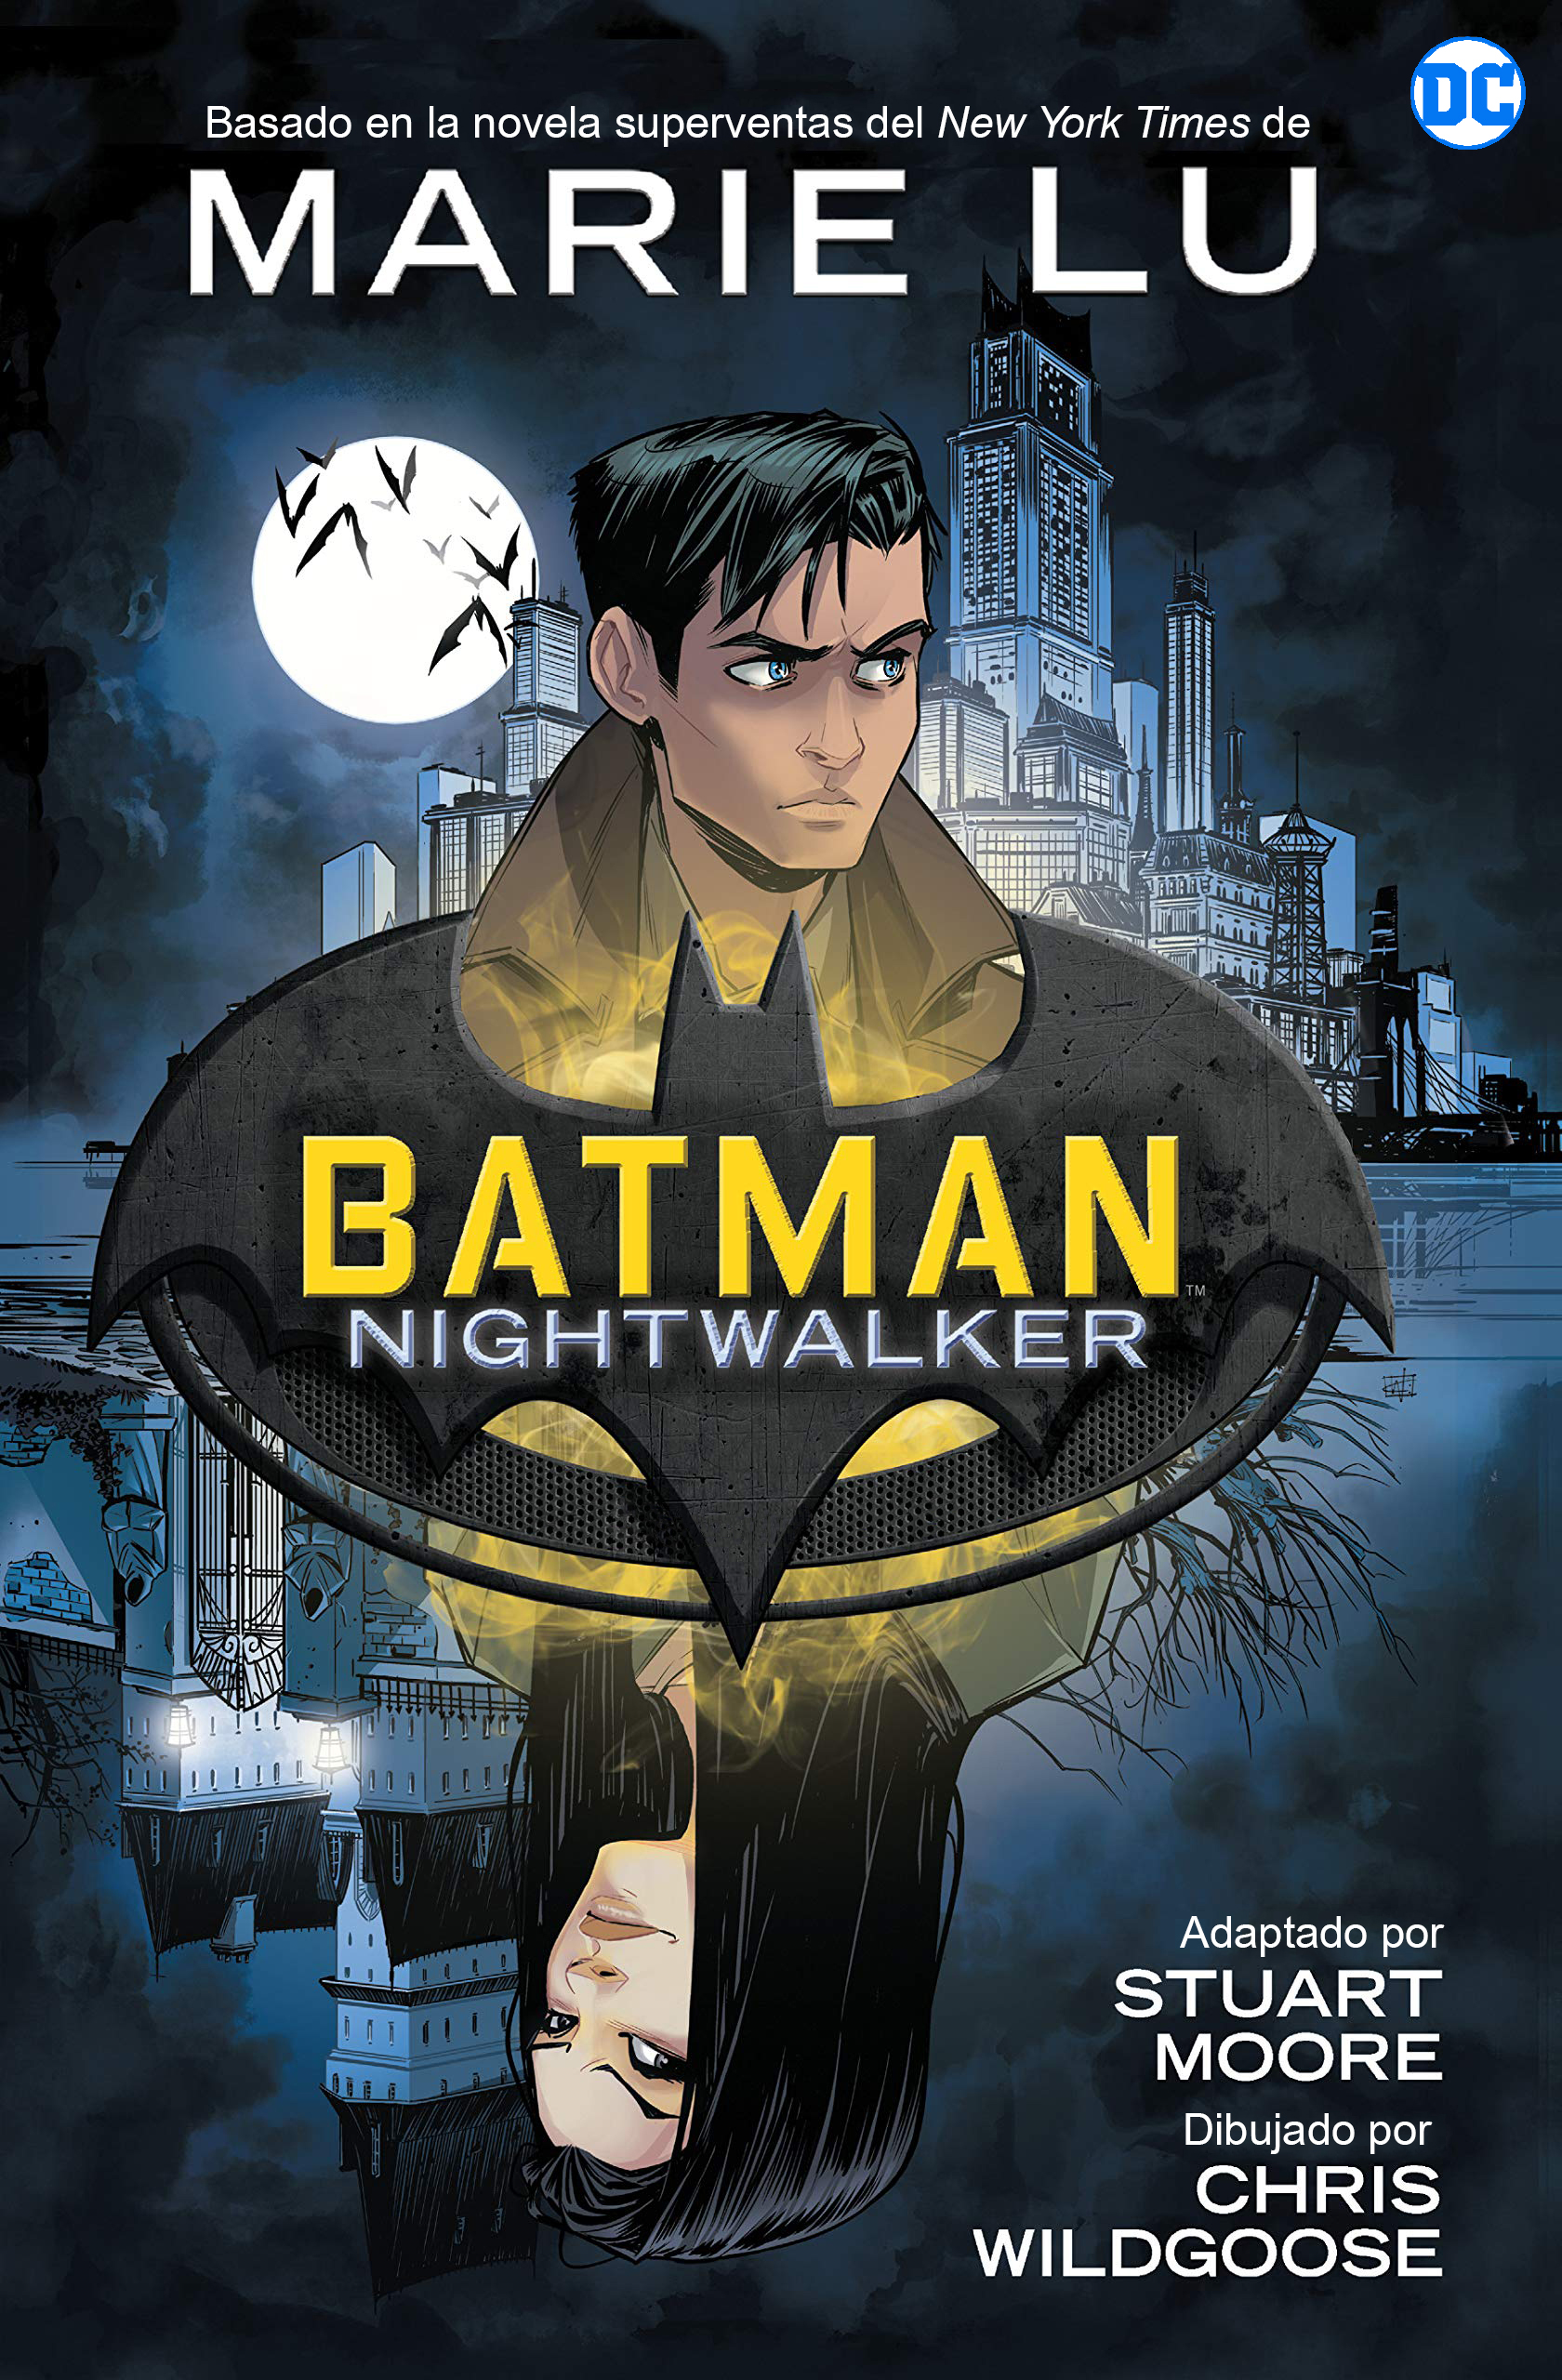 Batman Nightwalker (9788418359354)